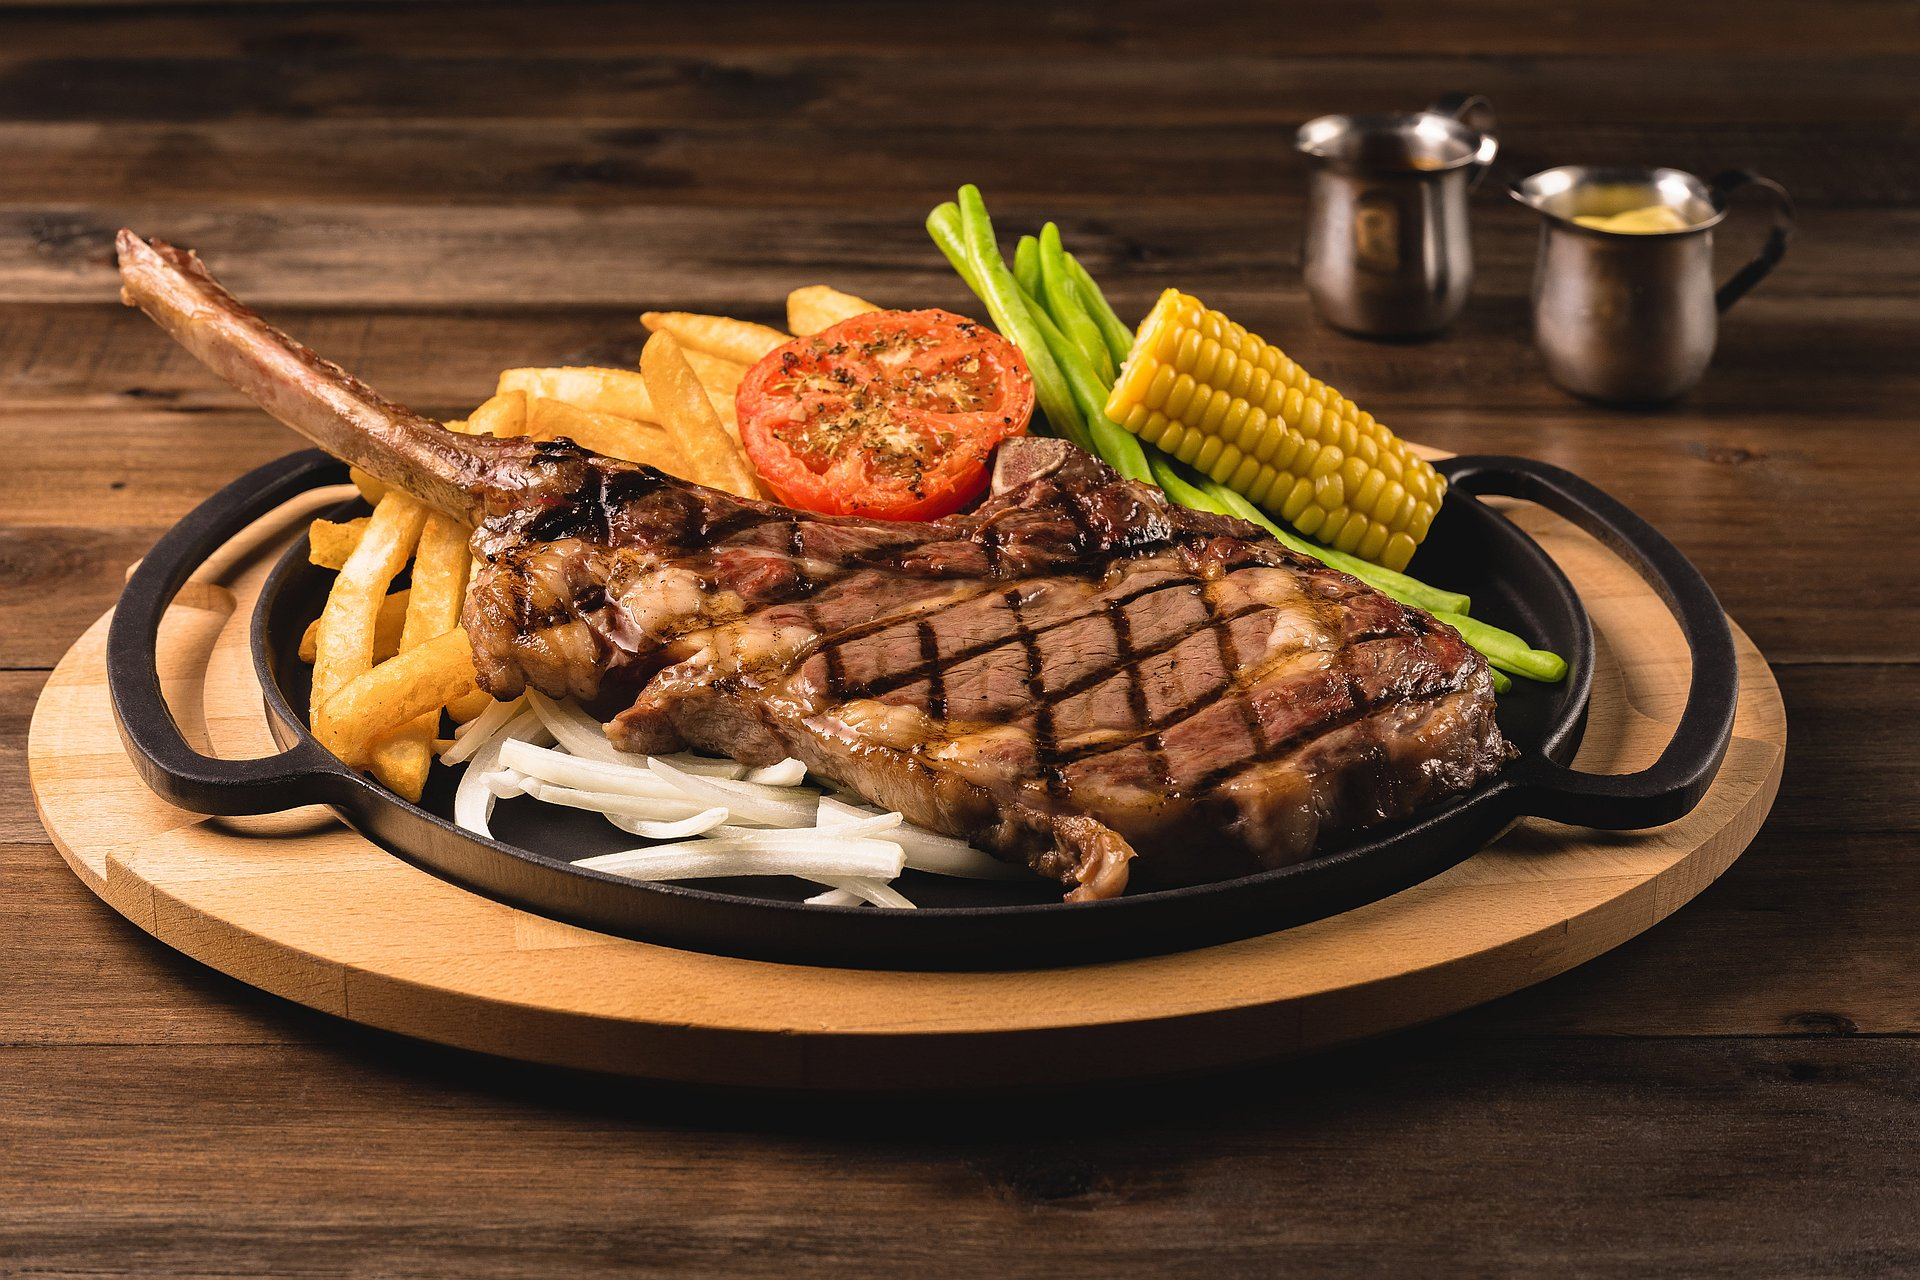 amba Taipei Ximending hotel chiba restaurant sizzling steak special for four